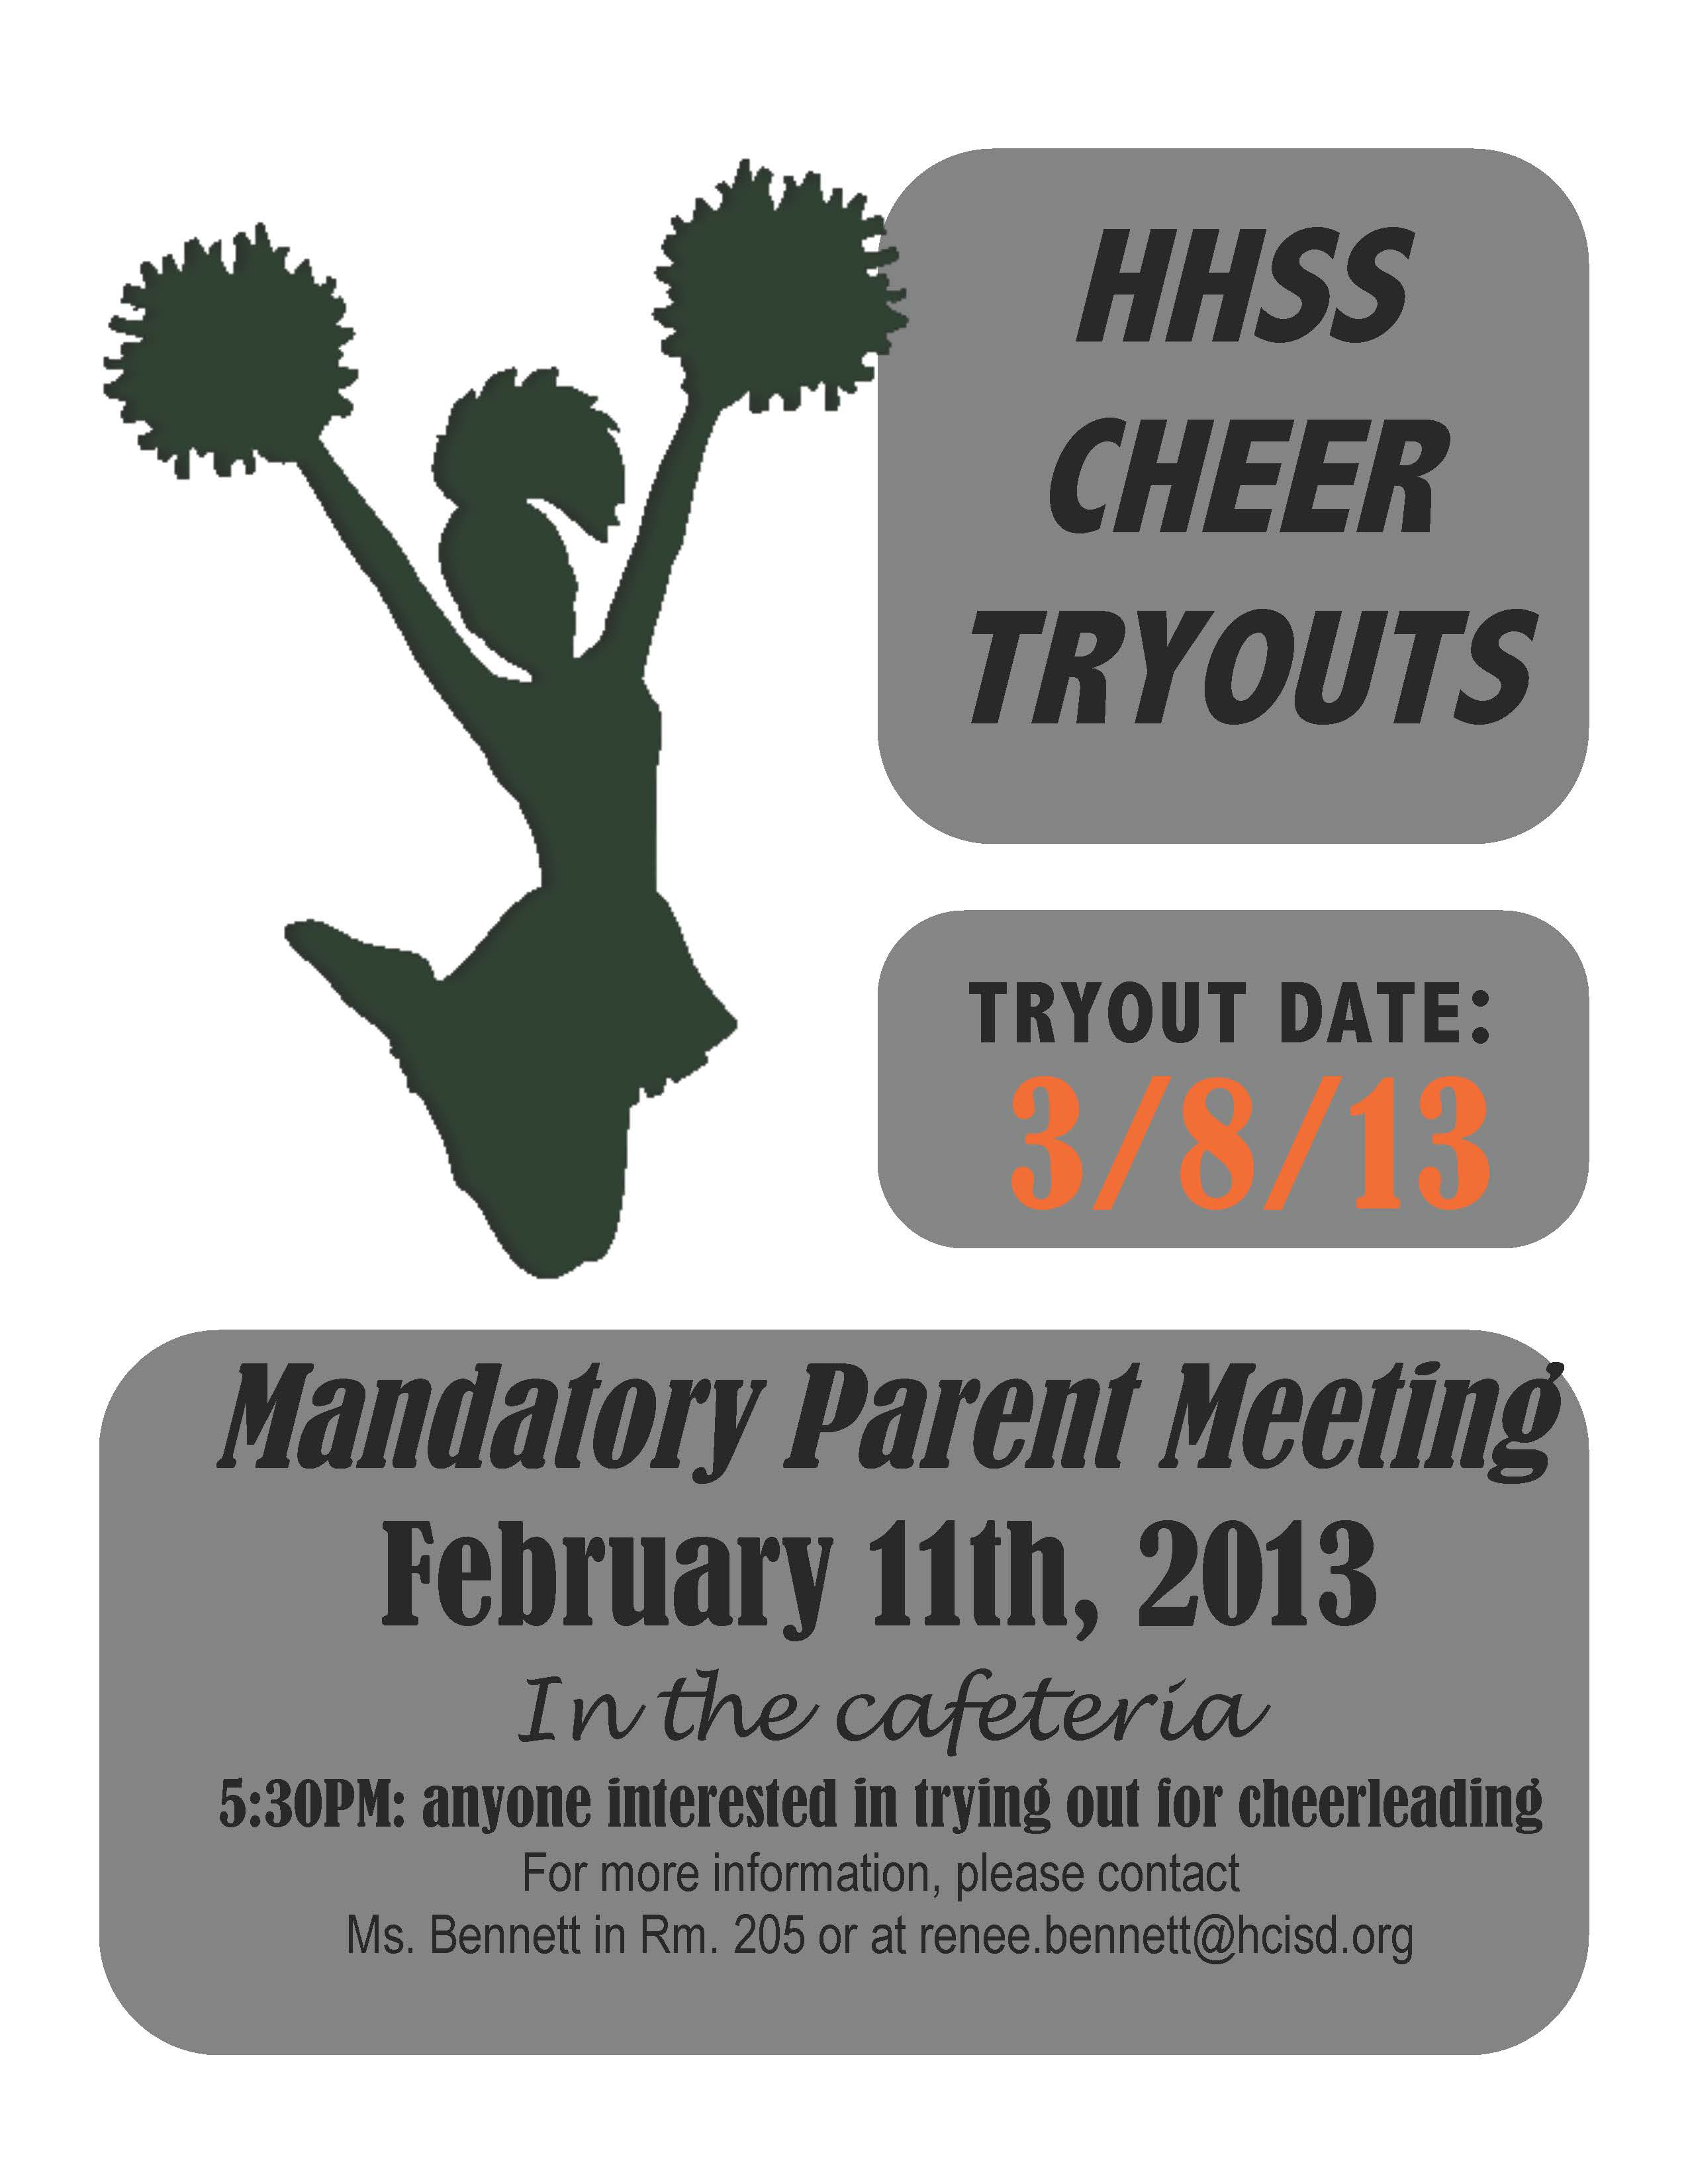 HHSS and Dr. Abraham P. Cano Freshman Academy to host cheer tryouts